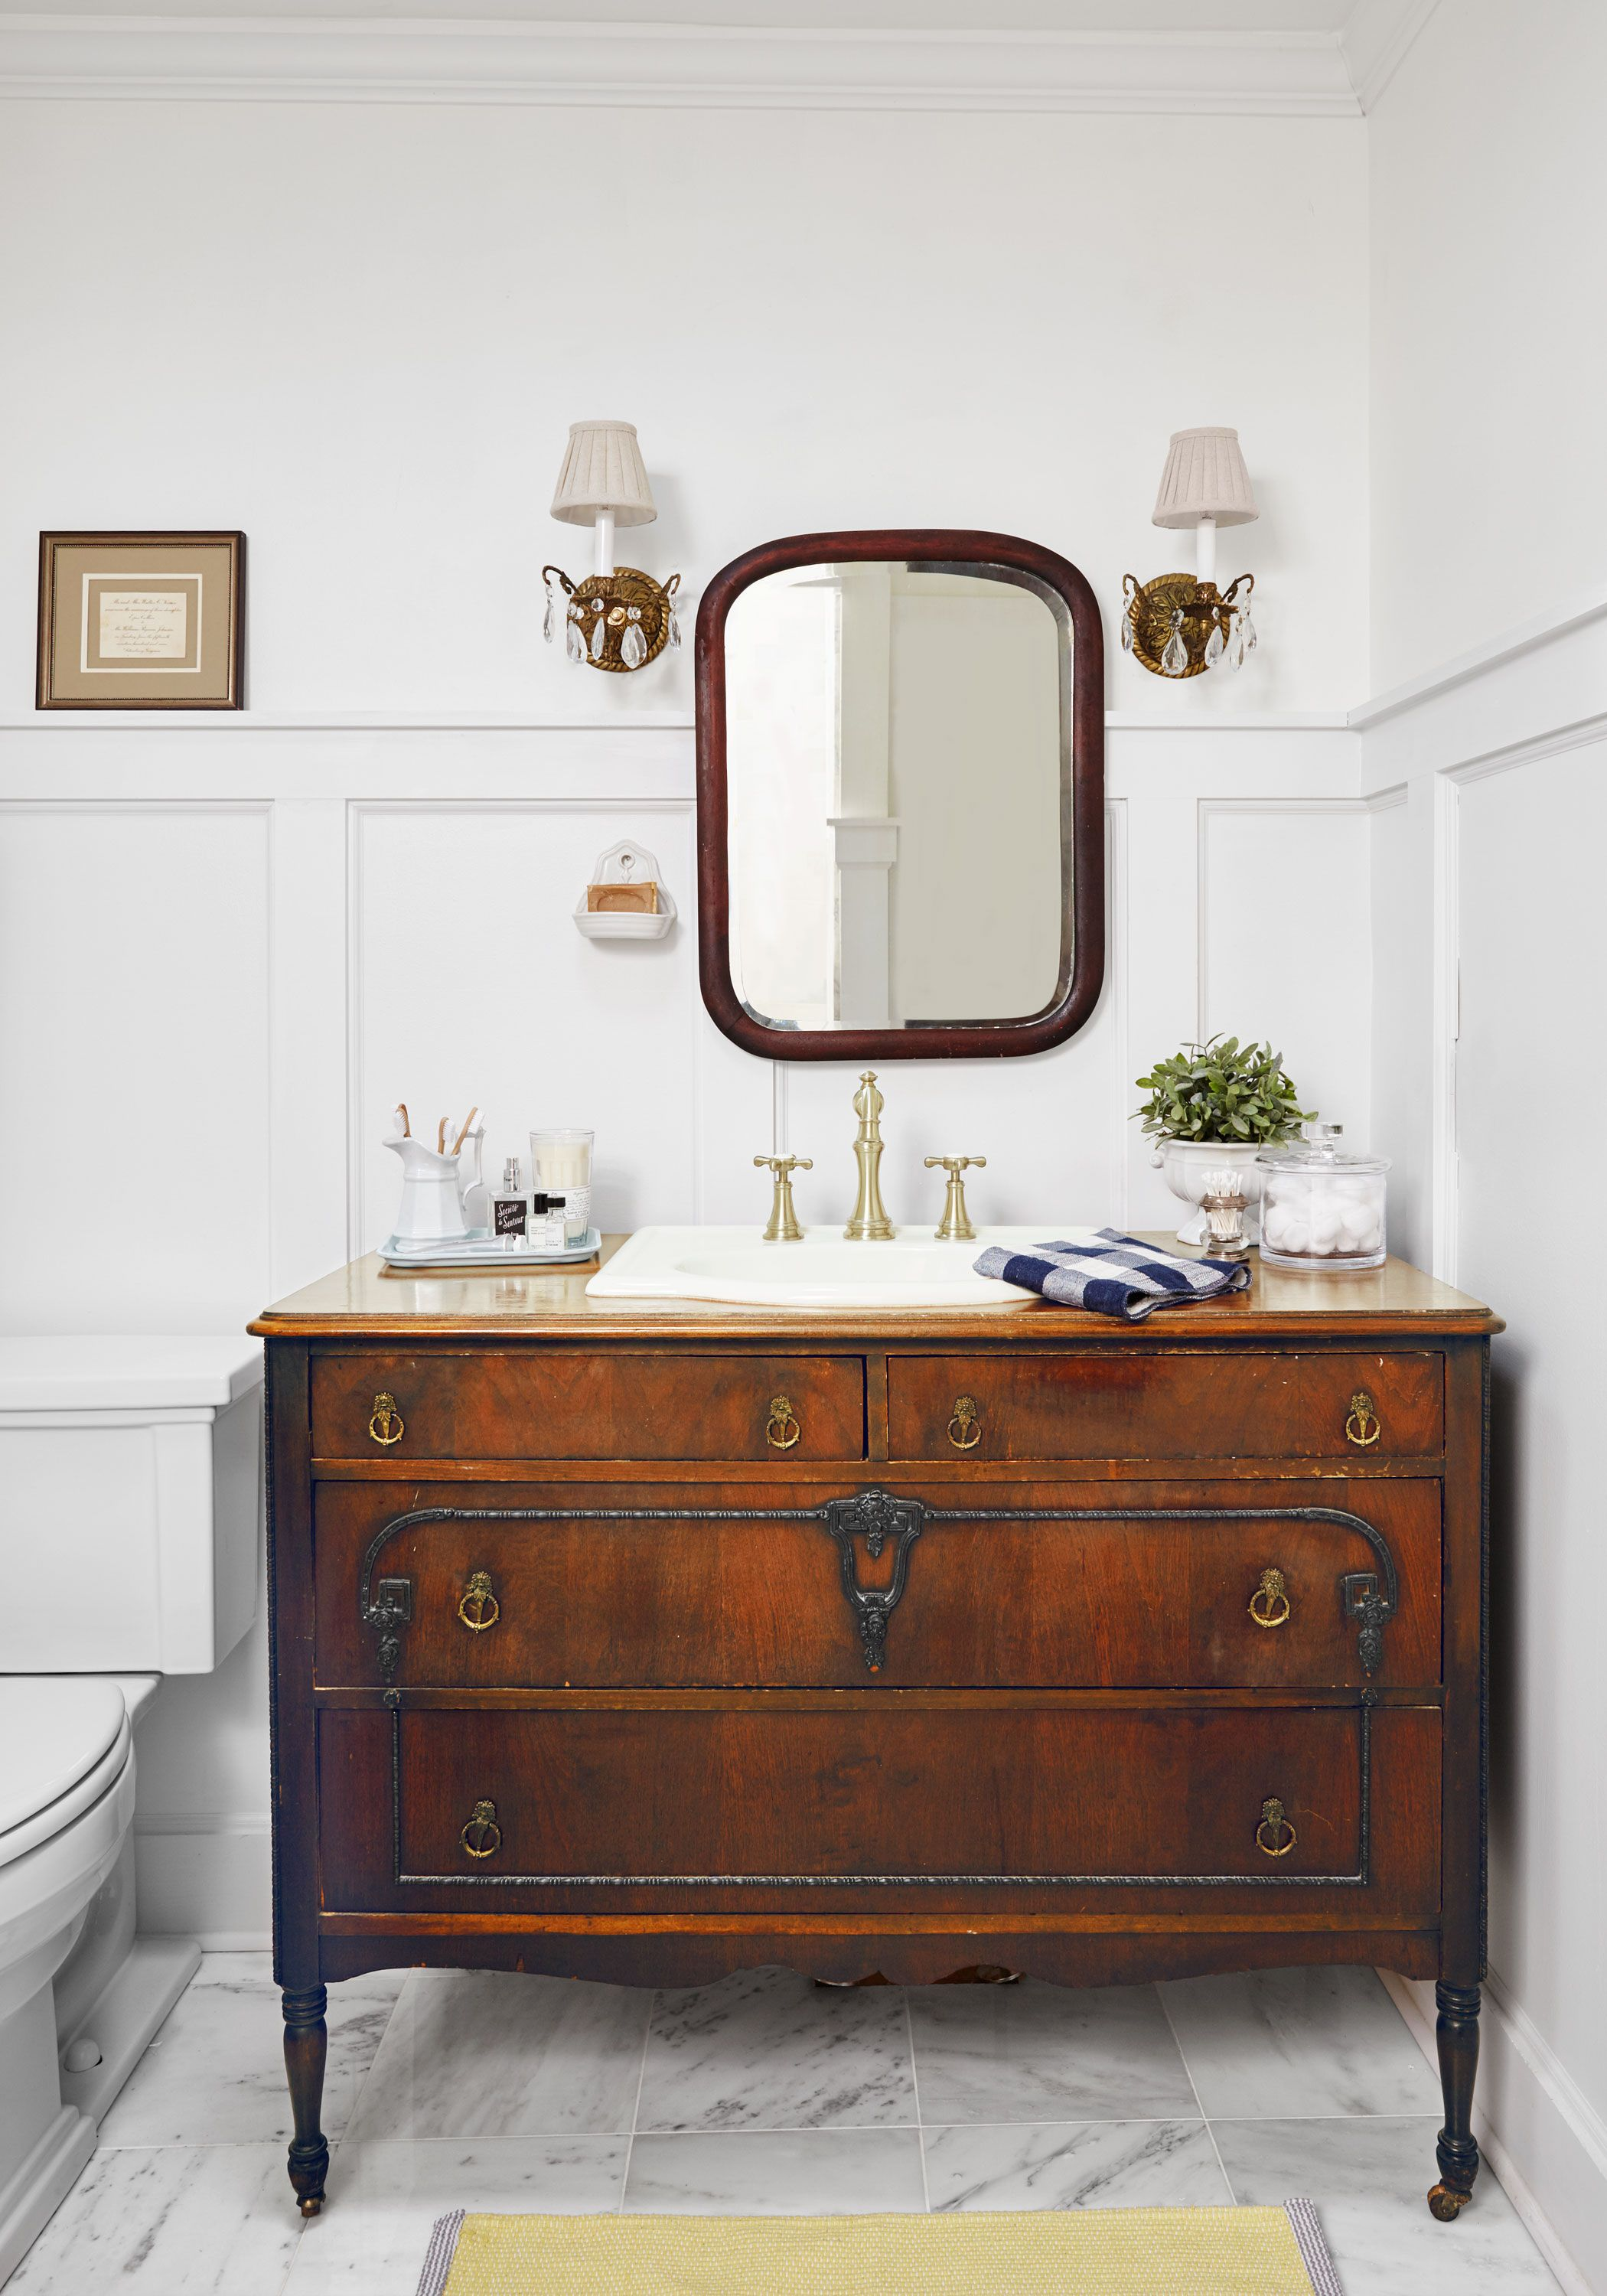 7 Ways To Repurpose A Vintage Dresser And Gain More Storage In